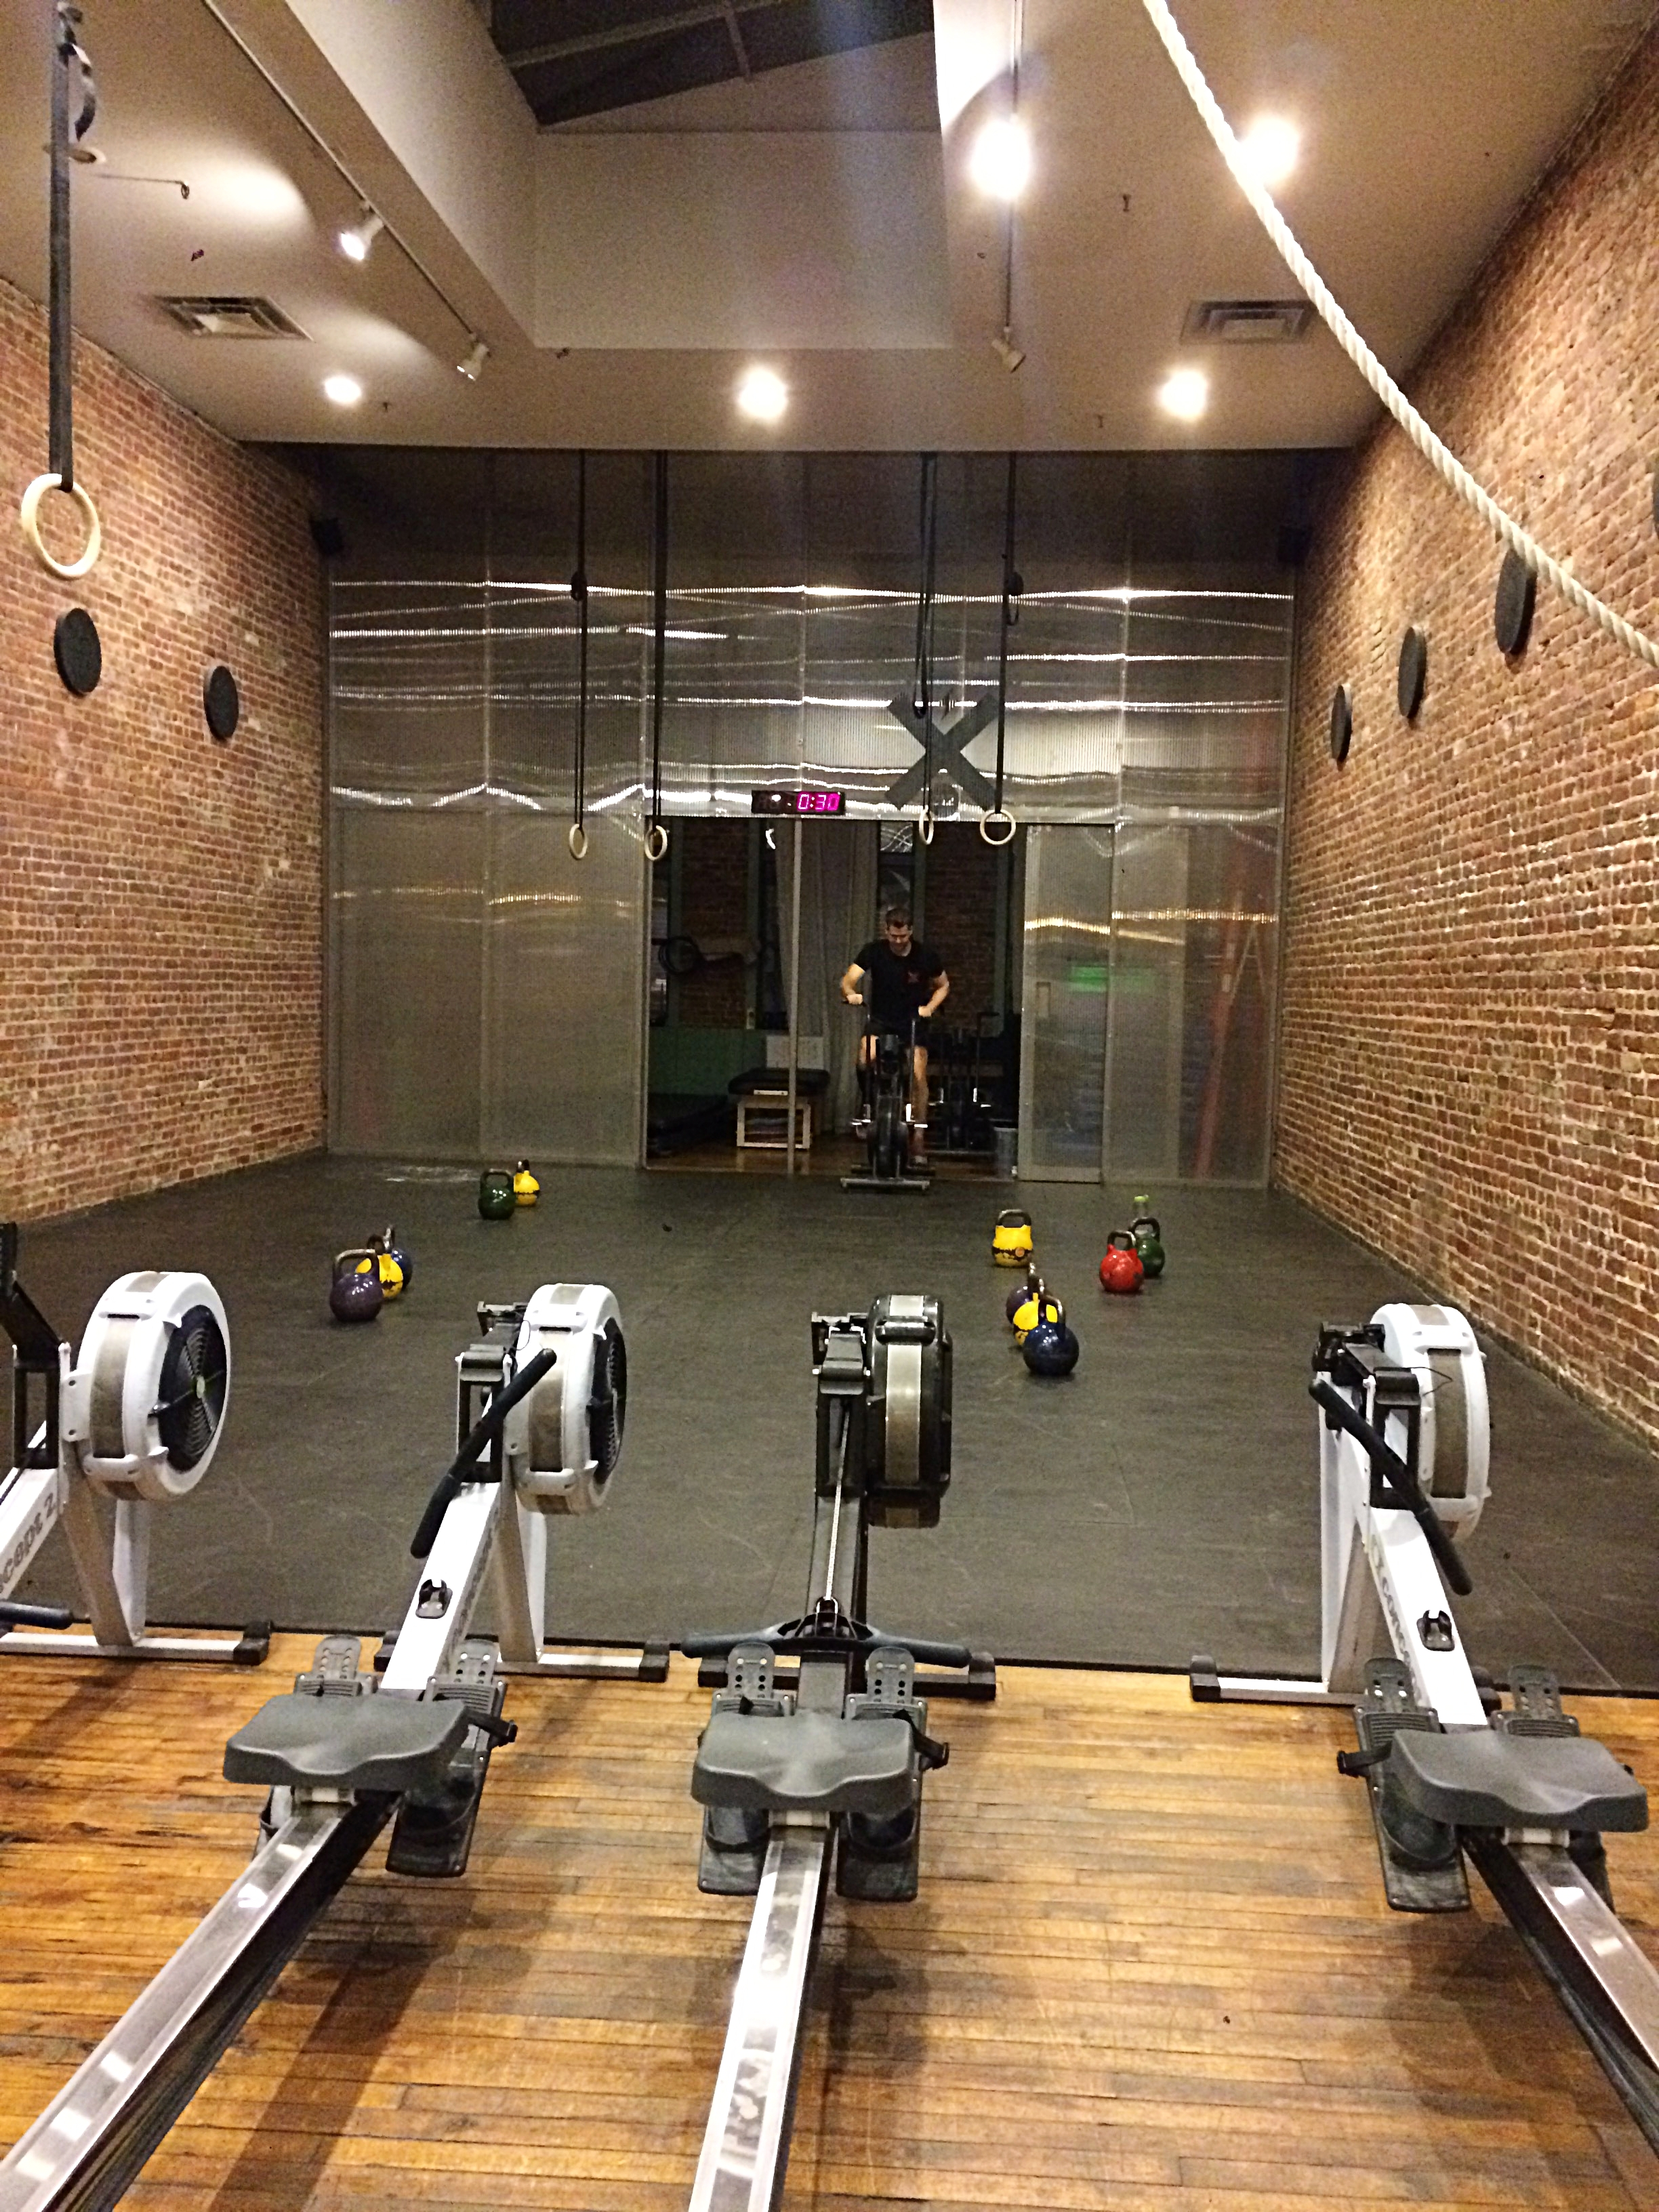 There's nothing more rewarding than sweating it out with a group all focused on one thing -- getting fit! Get the support and encouragement you need in a group environment.   Click here to see where I'm teaching in New York City.